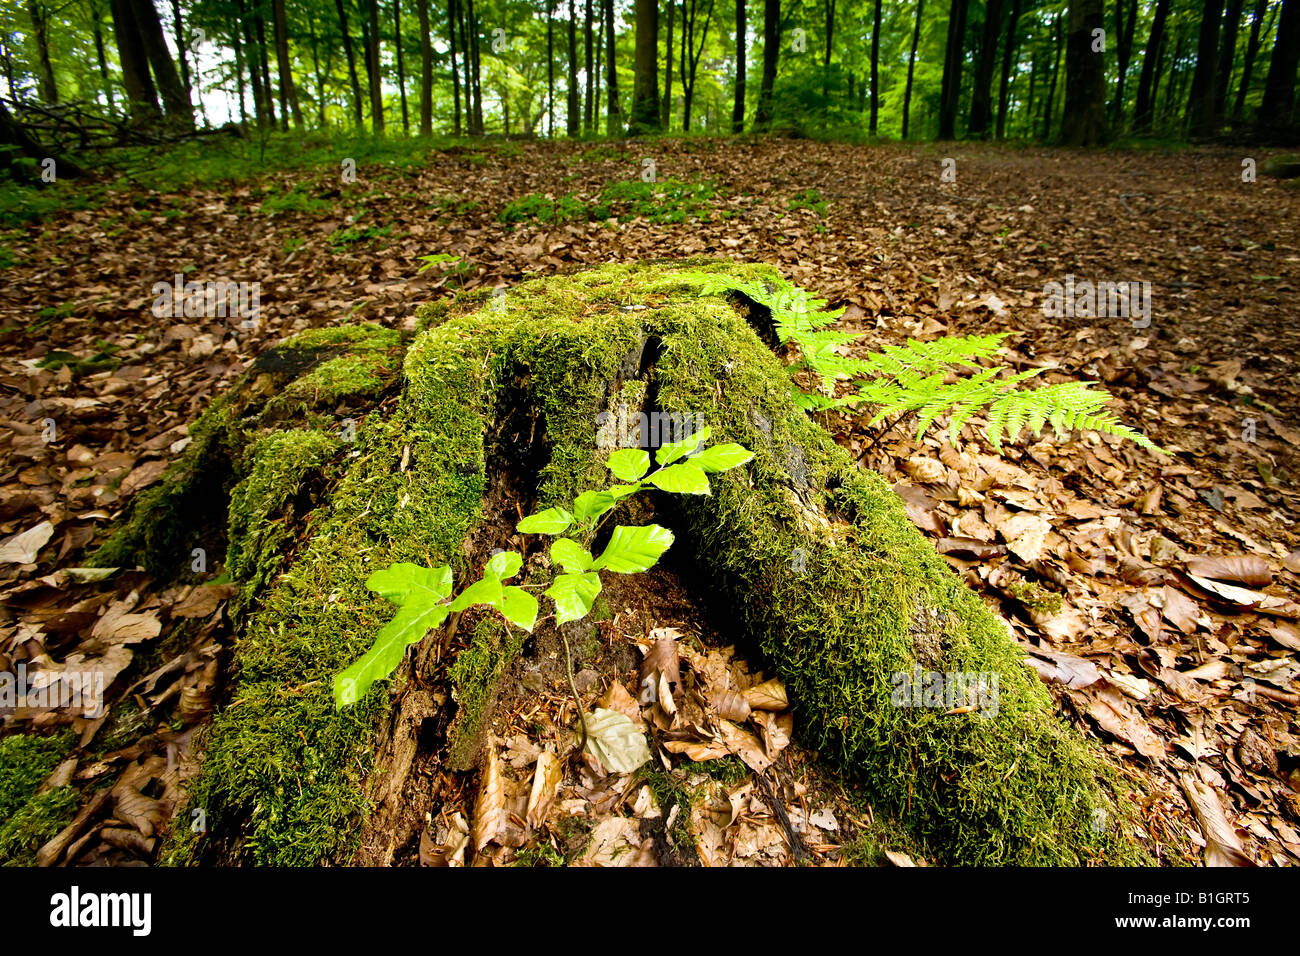 Old stumb at the forest floor - Stock Image